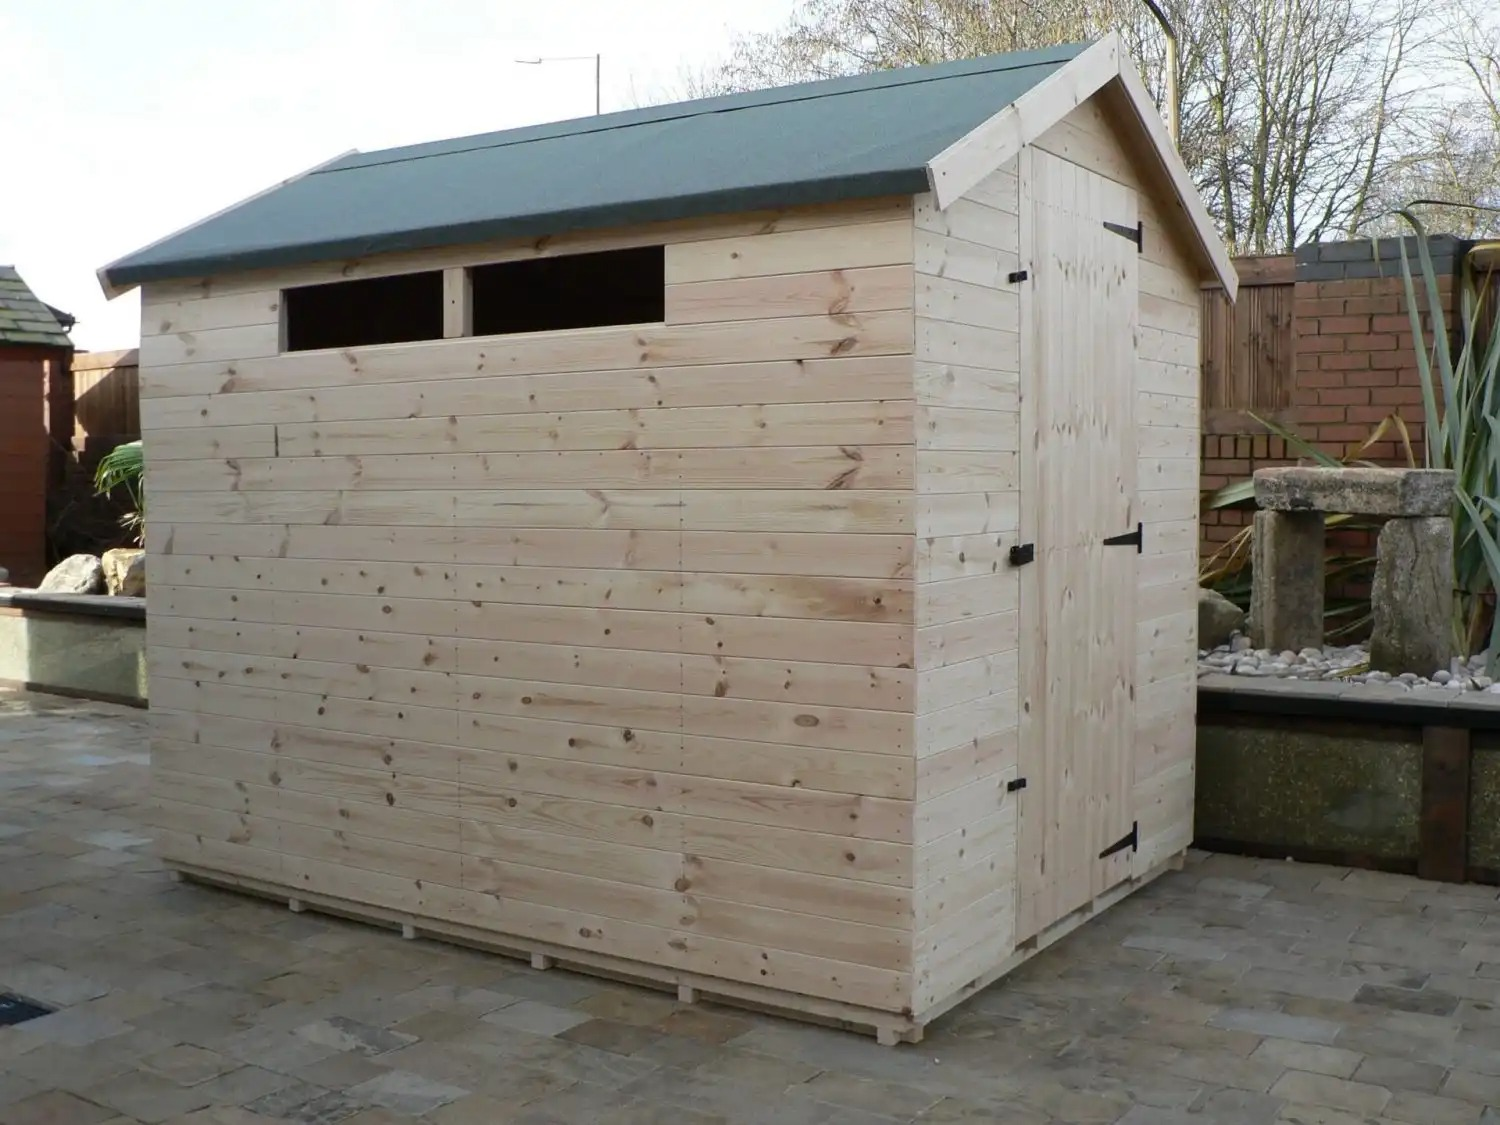 8' X 6' Apex Shed Security Windows